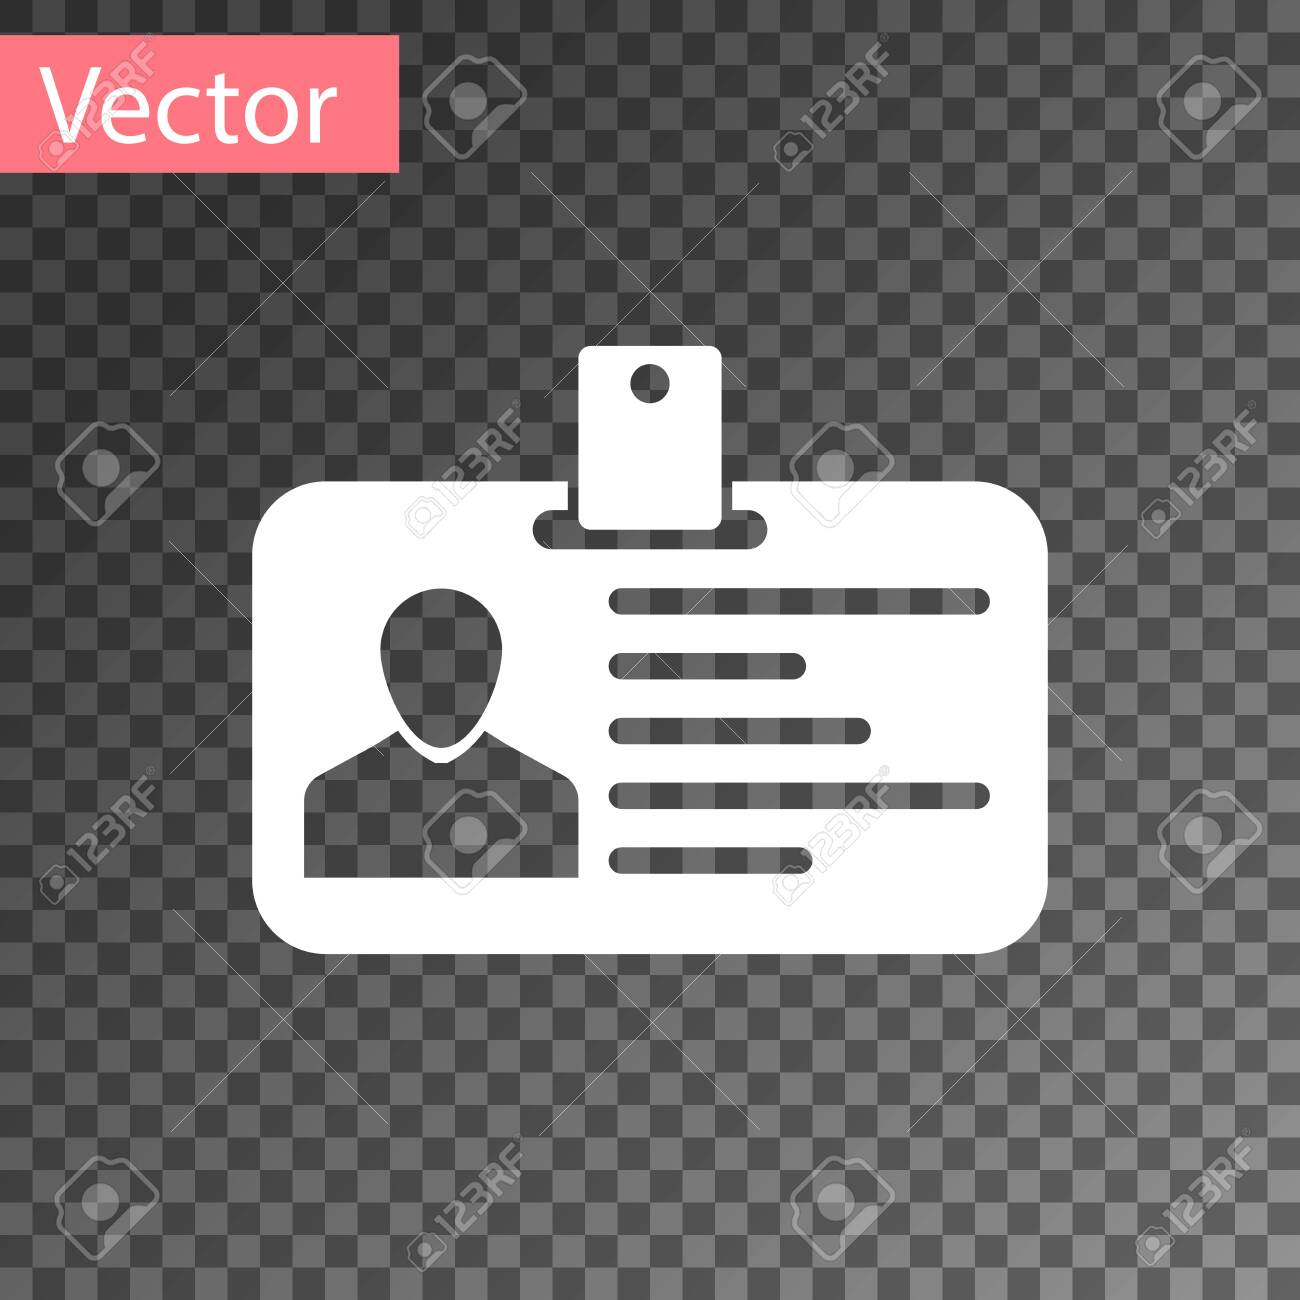 white identification badge icon isolated on transparent background royalty free cliparts vectors and stock illustration image 123870153 white identification badge icon isolated on transparent background